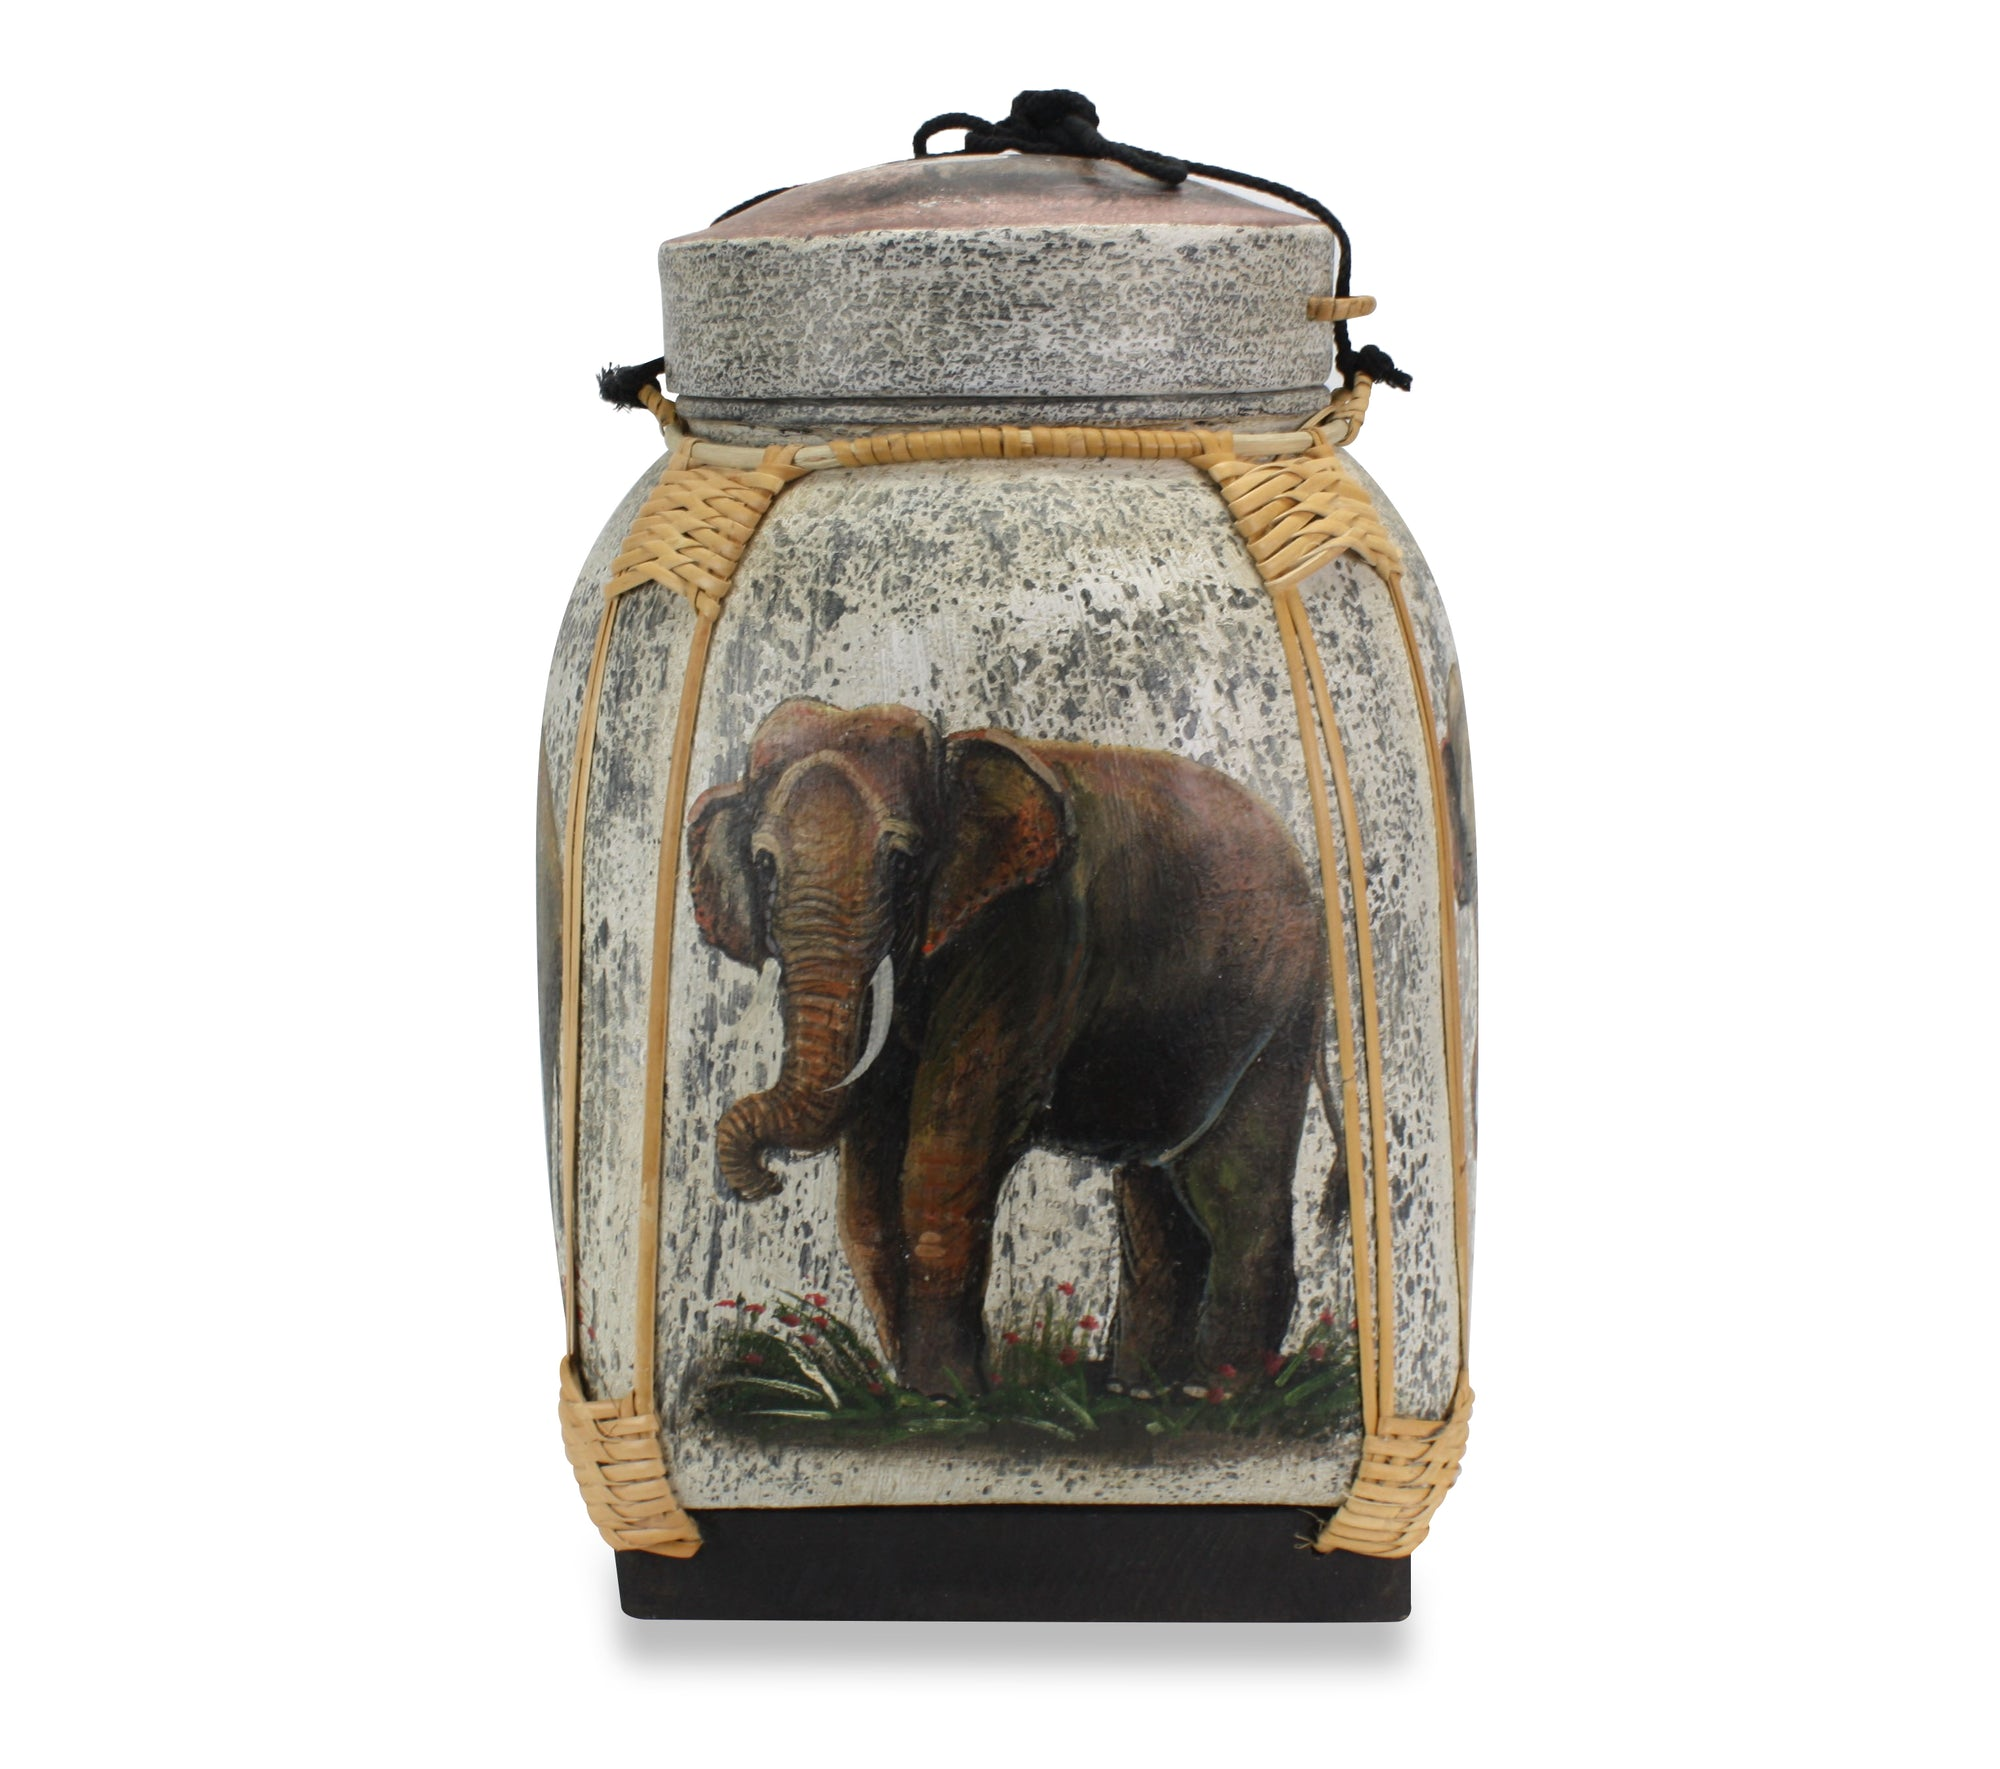 Rice seed box - Extra Large Lacquered Bamboo Basket, 45cm high, Elephants, Standing - farangshop-co